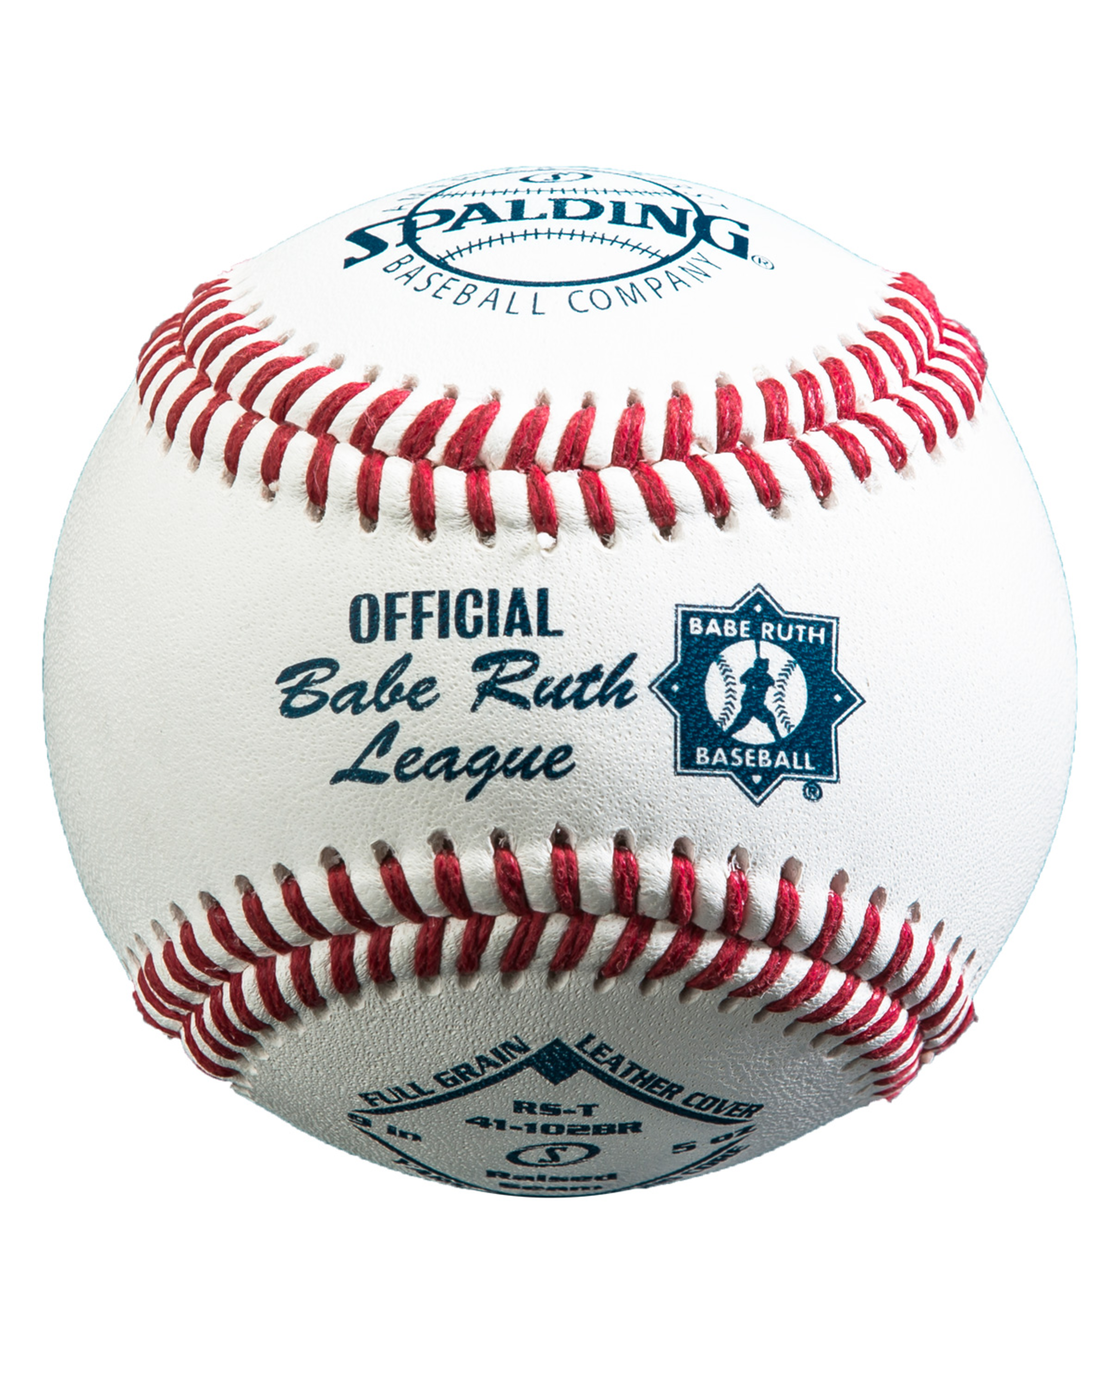 OFFICIAL BABE RUTH LEAGUE BASEBALL - 12 PACK